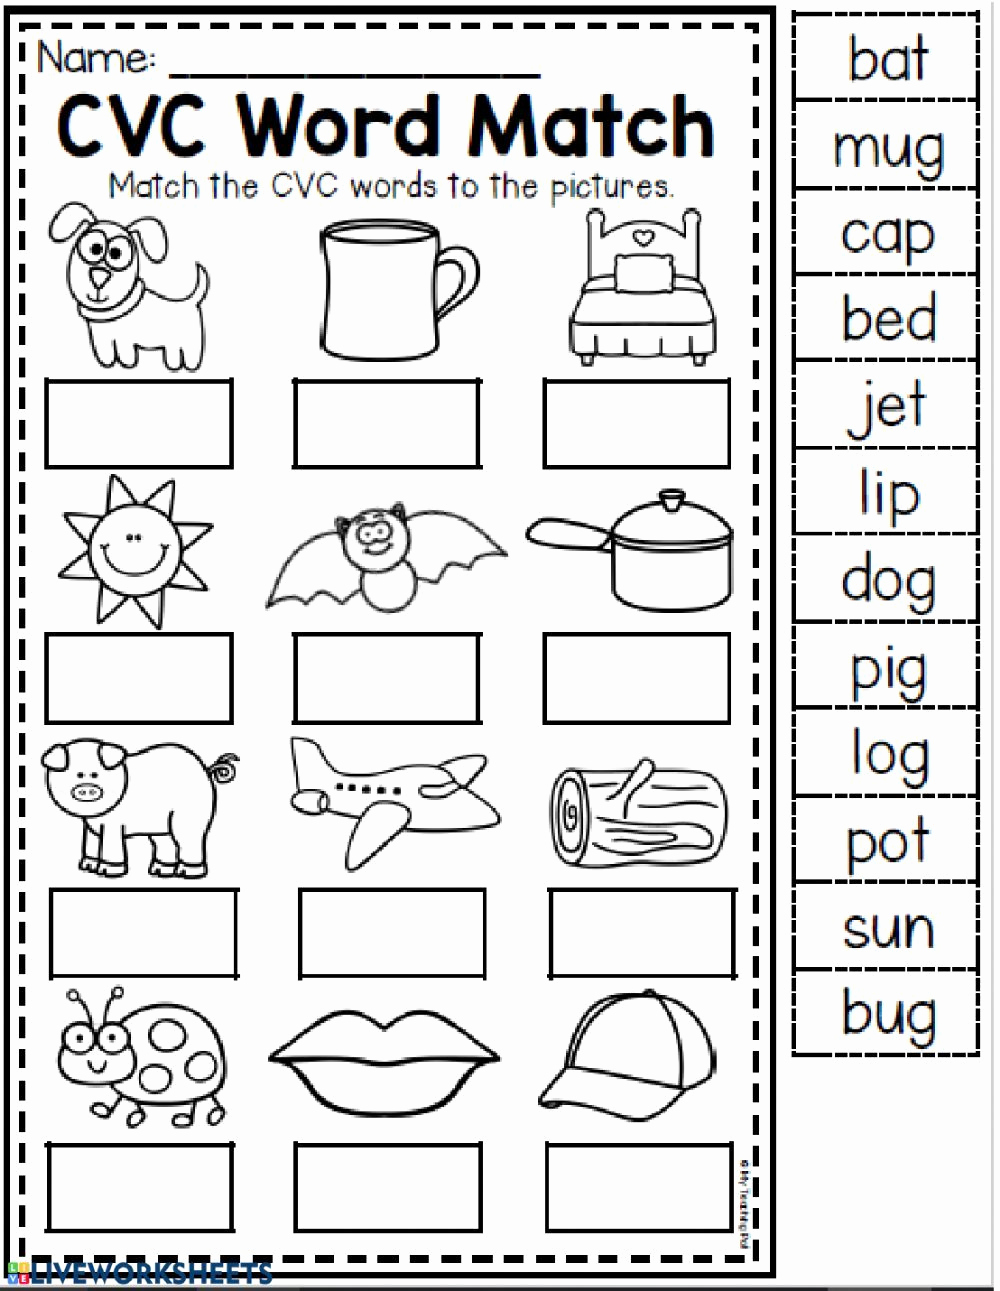 Cvc Worksheets for Kinder Best Of Pin On Classroom